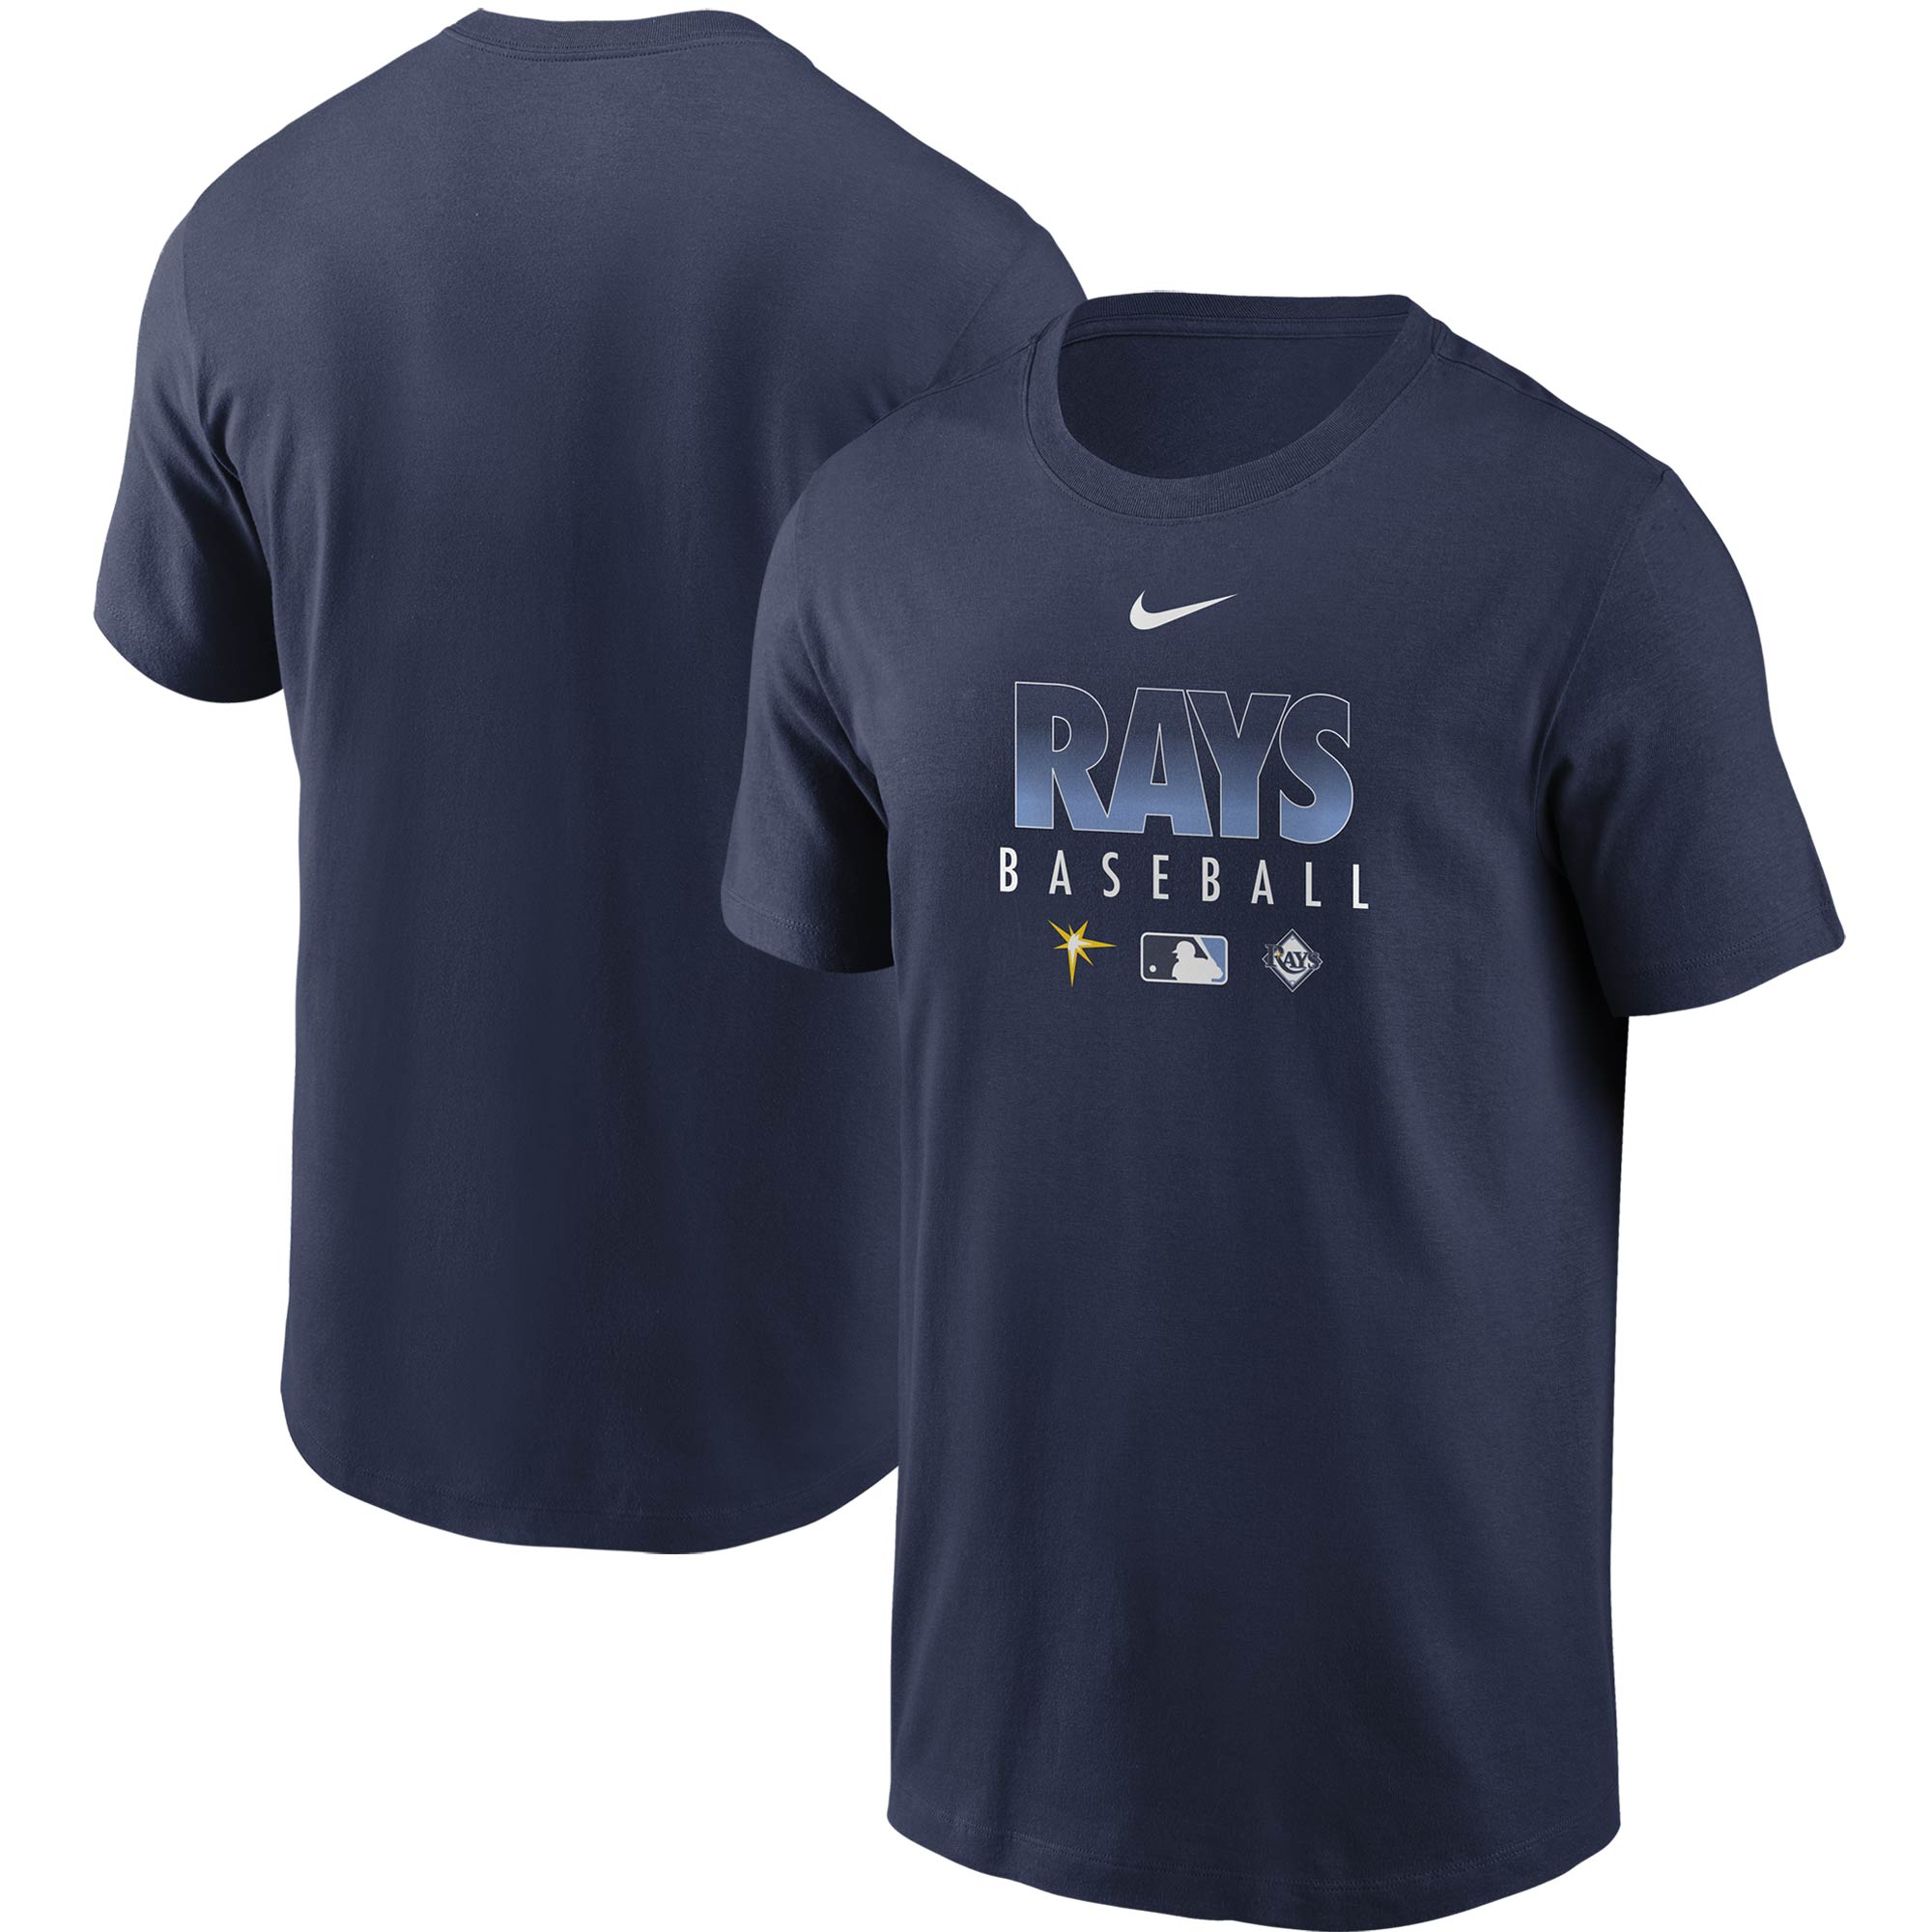 Tampa Bay Rays Nike Authentic Collection Team Performance T-Shirt - Navy